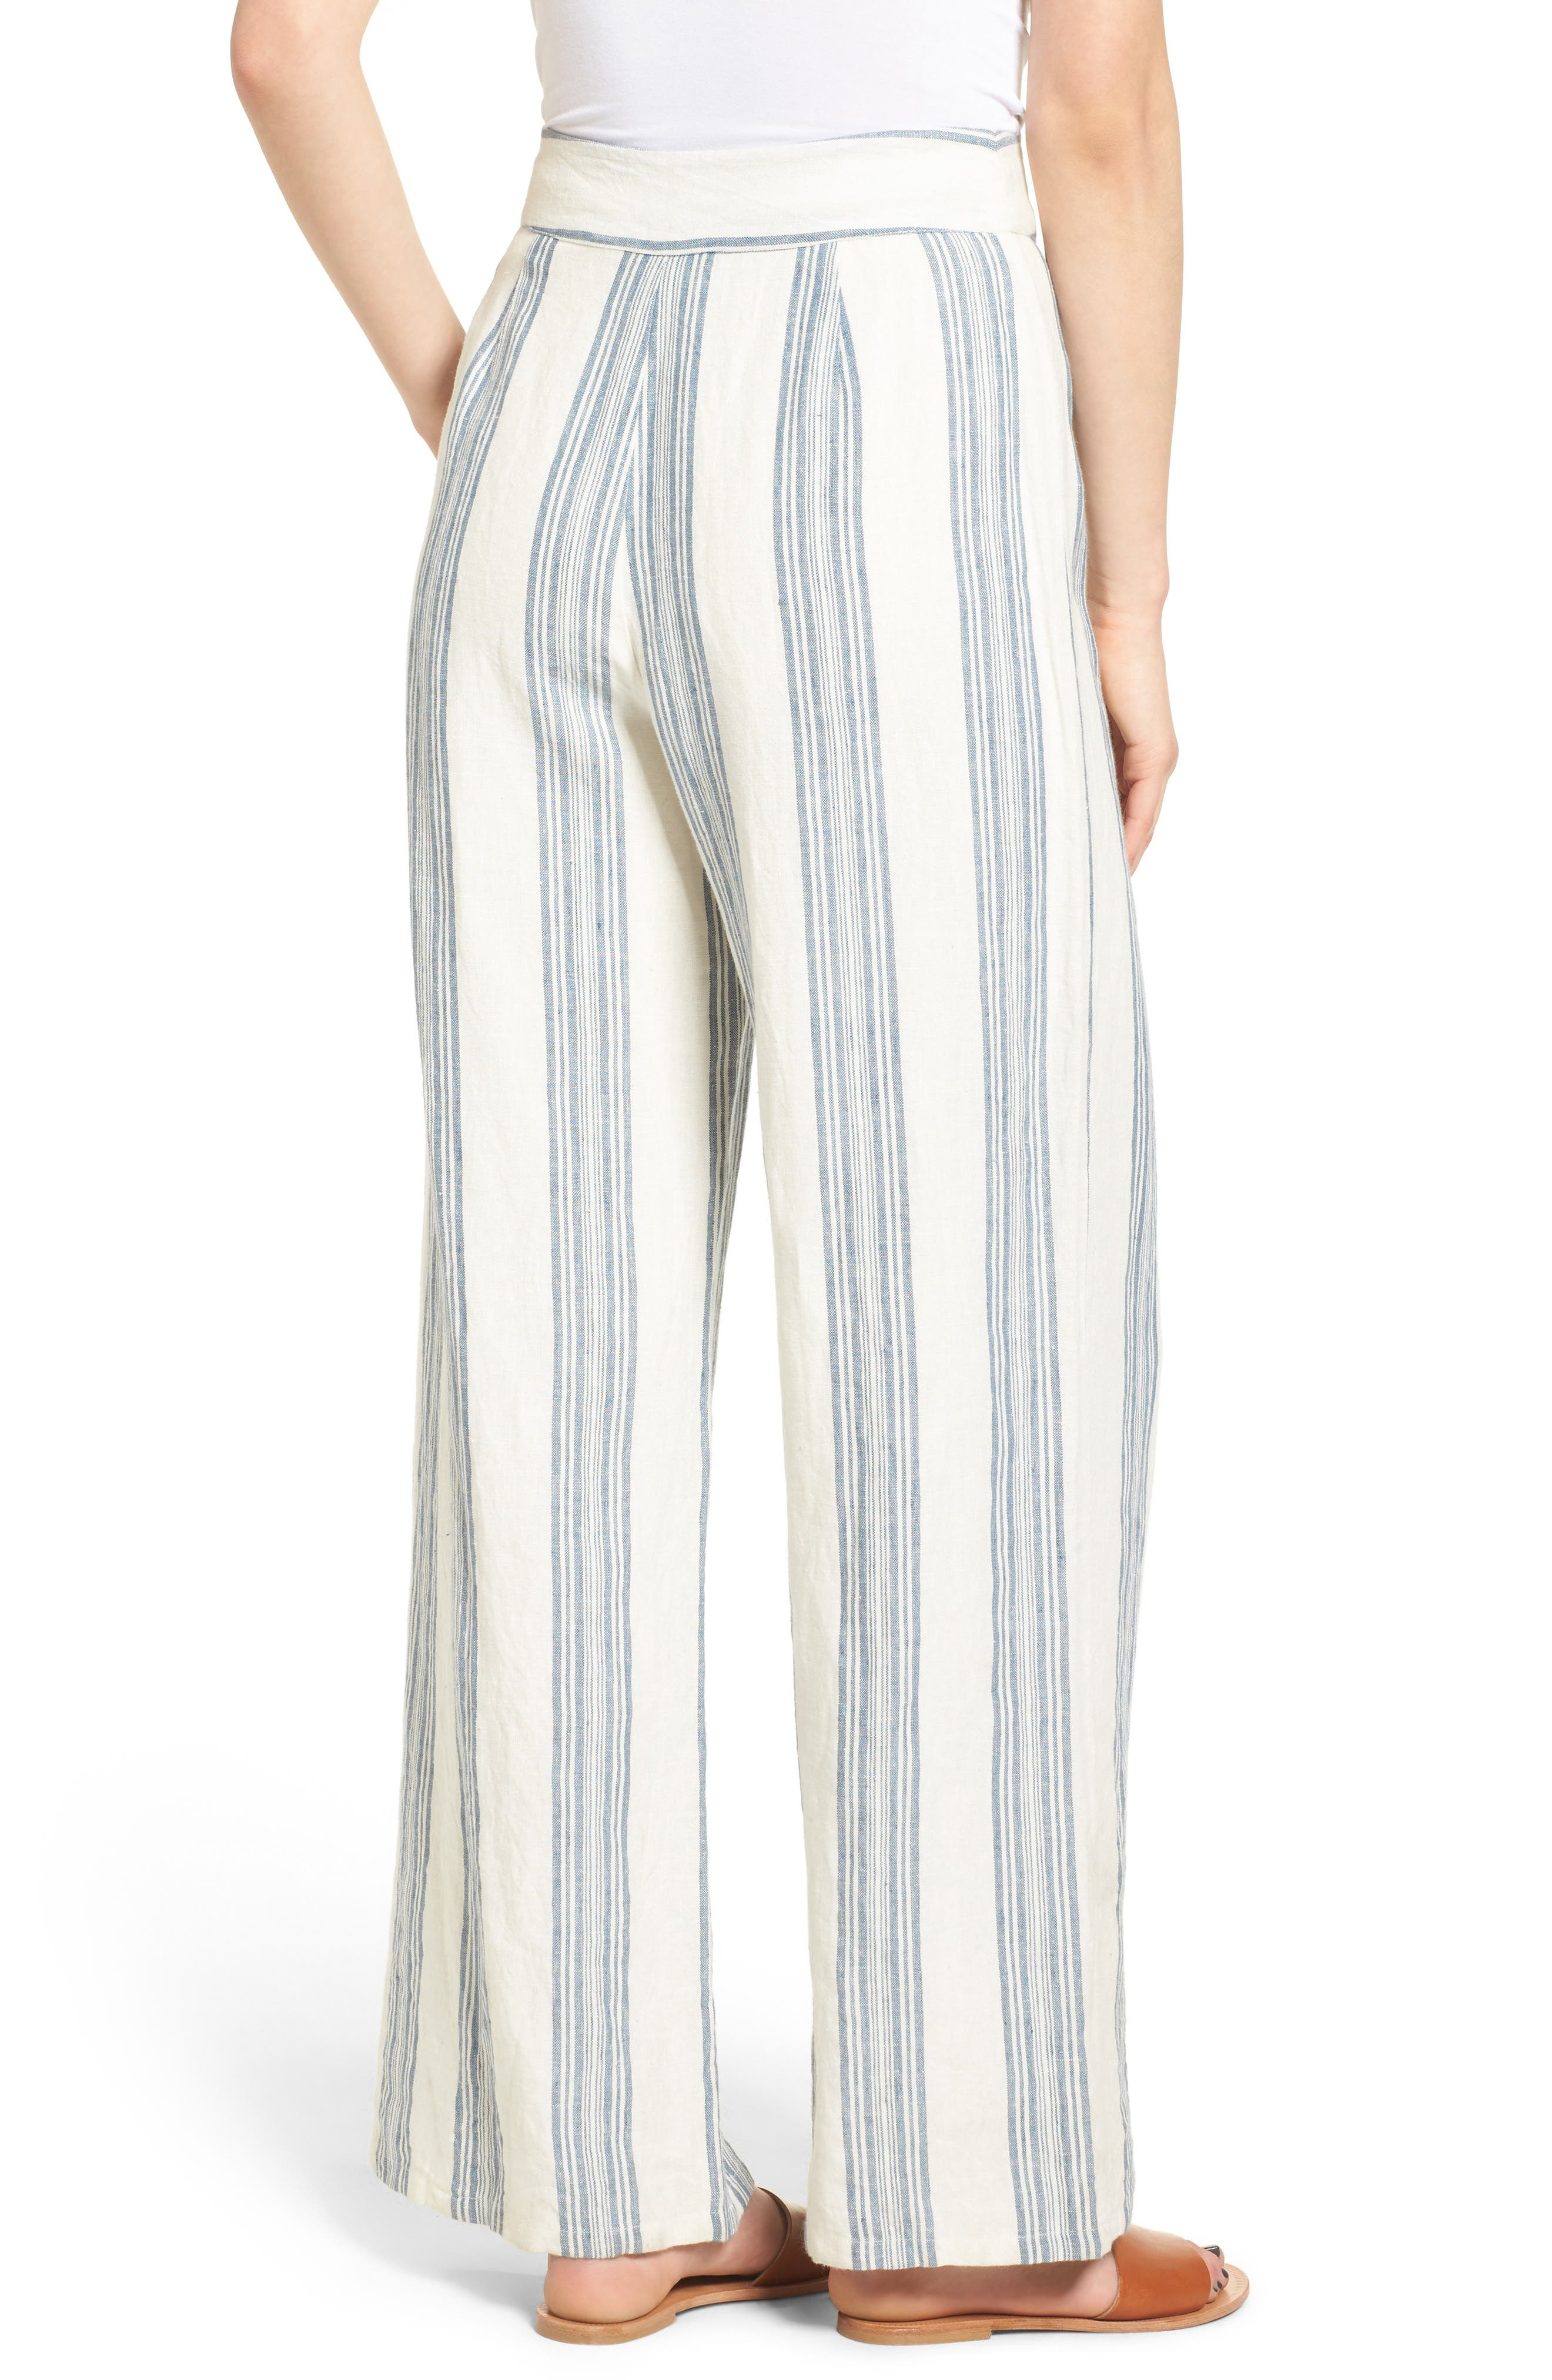 TULAROSA,                             Marley Linen Pants,                             Alternate thumbnail 2, color,                             472